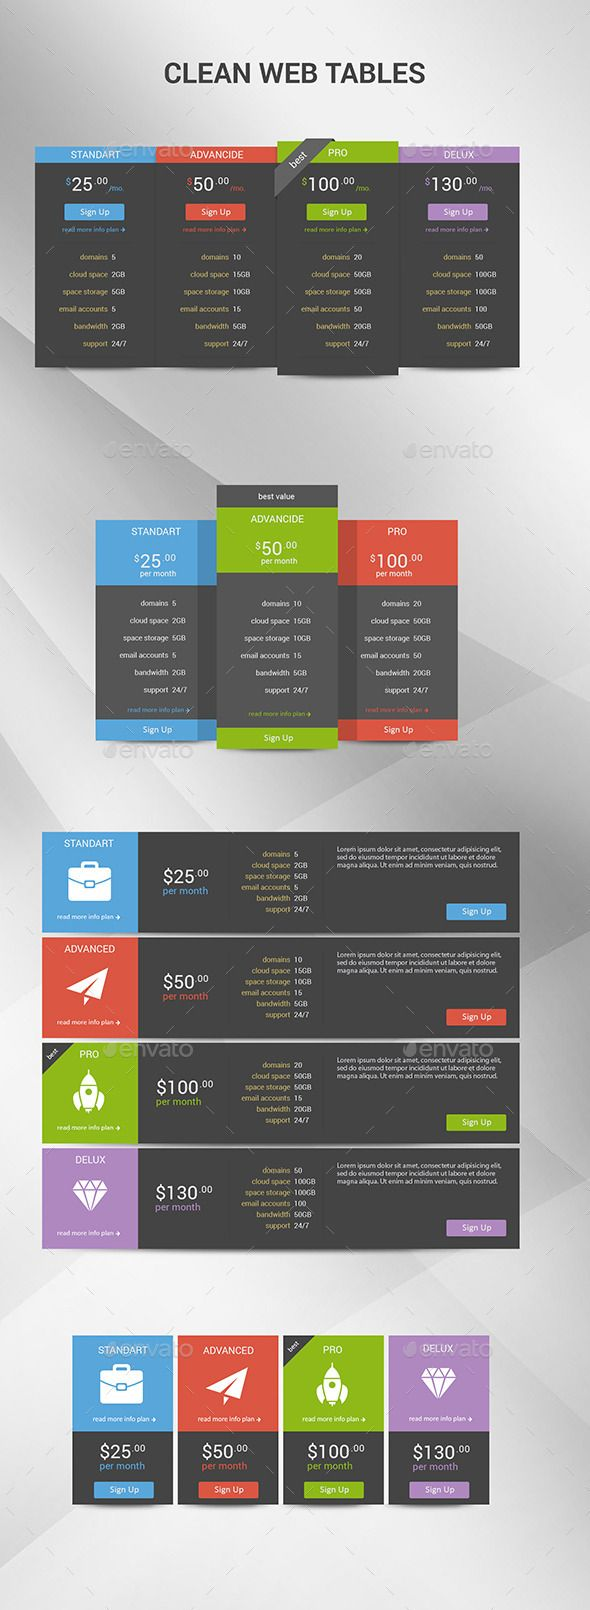 Clean Web Tables Template PSD. Download here: http://graphicriver.net/item/clean-web-tables/10018582?ref=ksioks